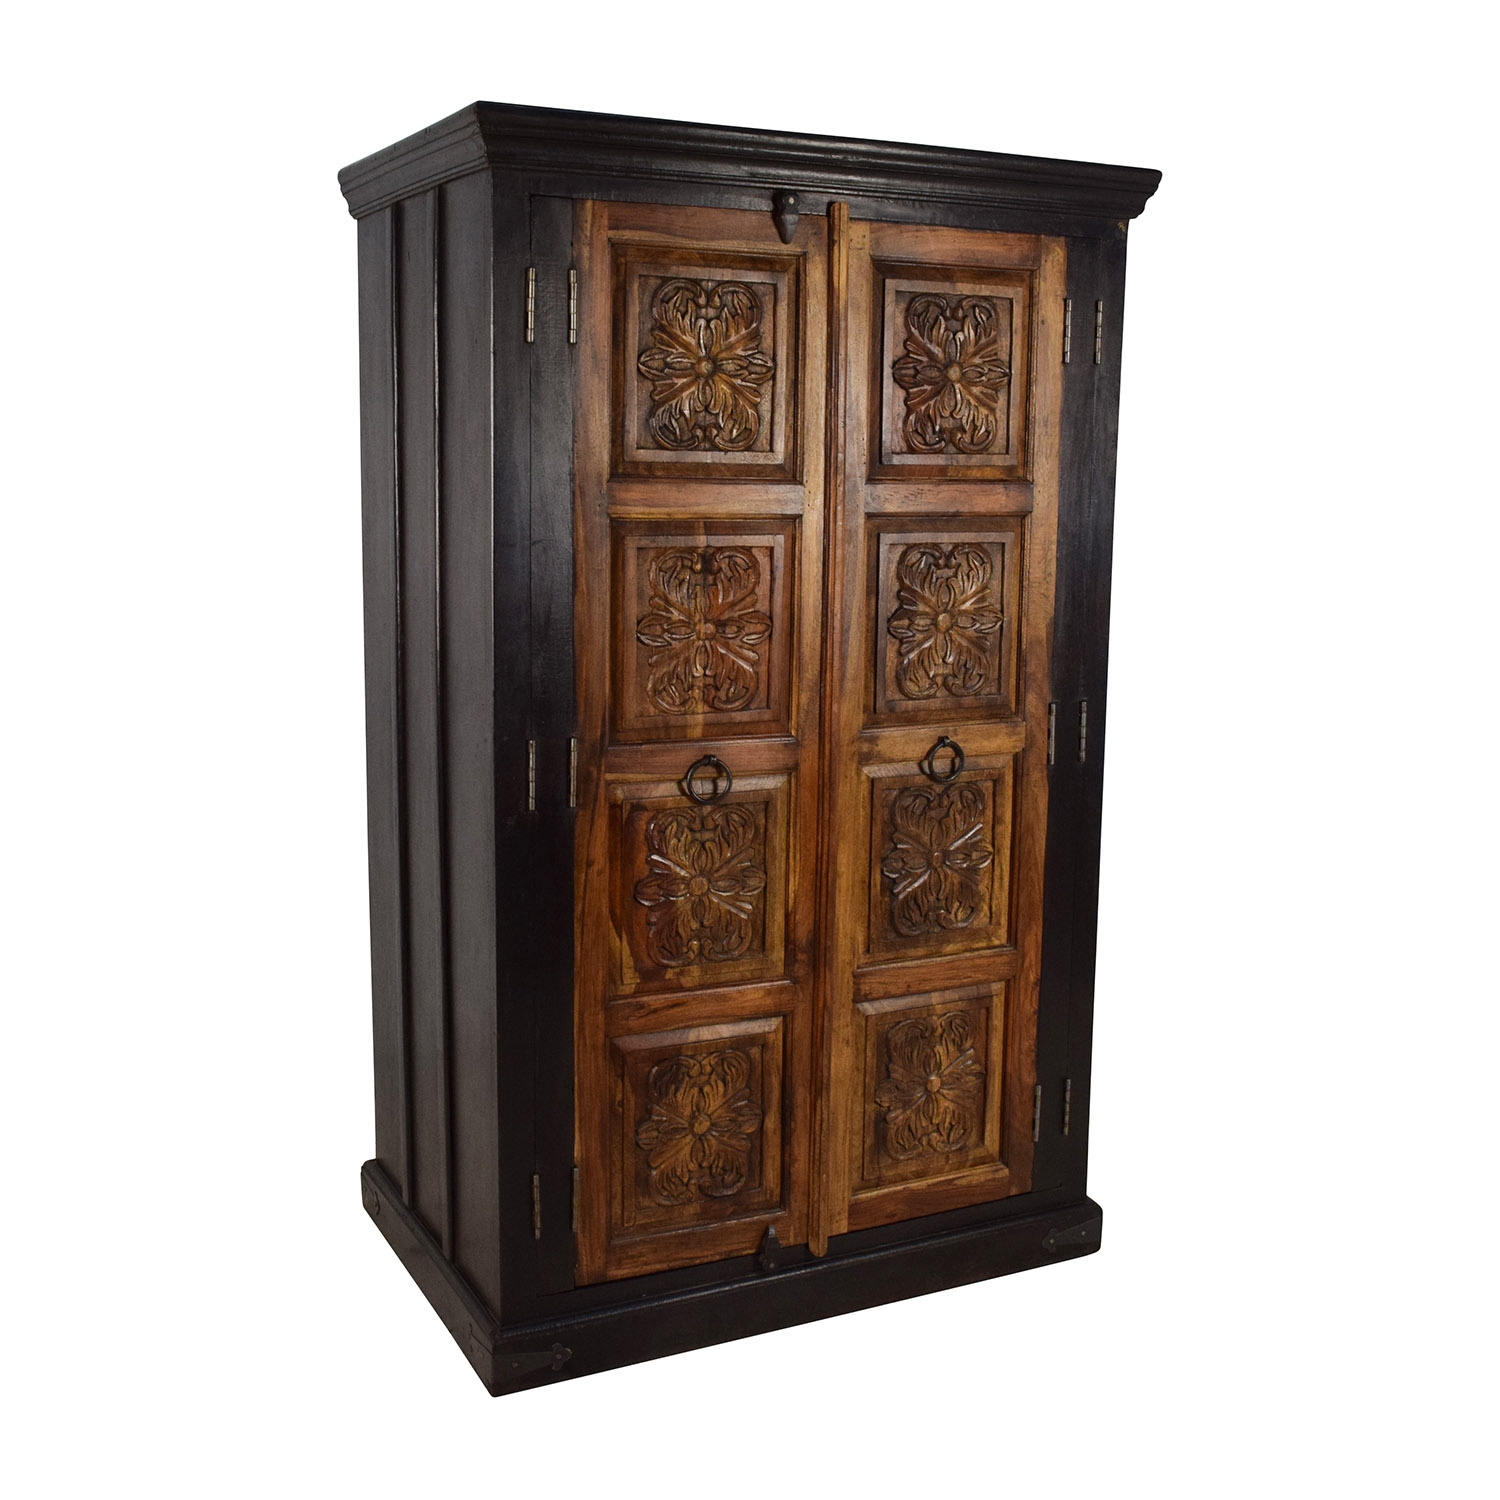 74 Off Large Carved Wooden Armoire Storage In Large Wooden Wardrobes (Image 2 of 25)